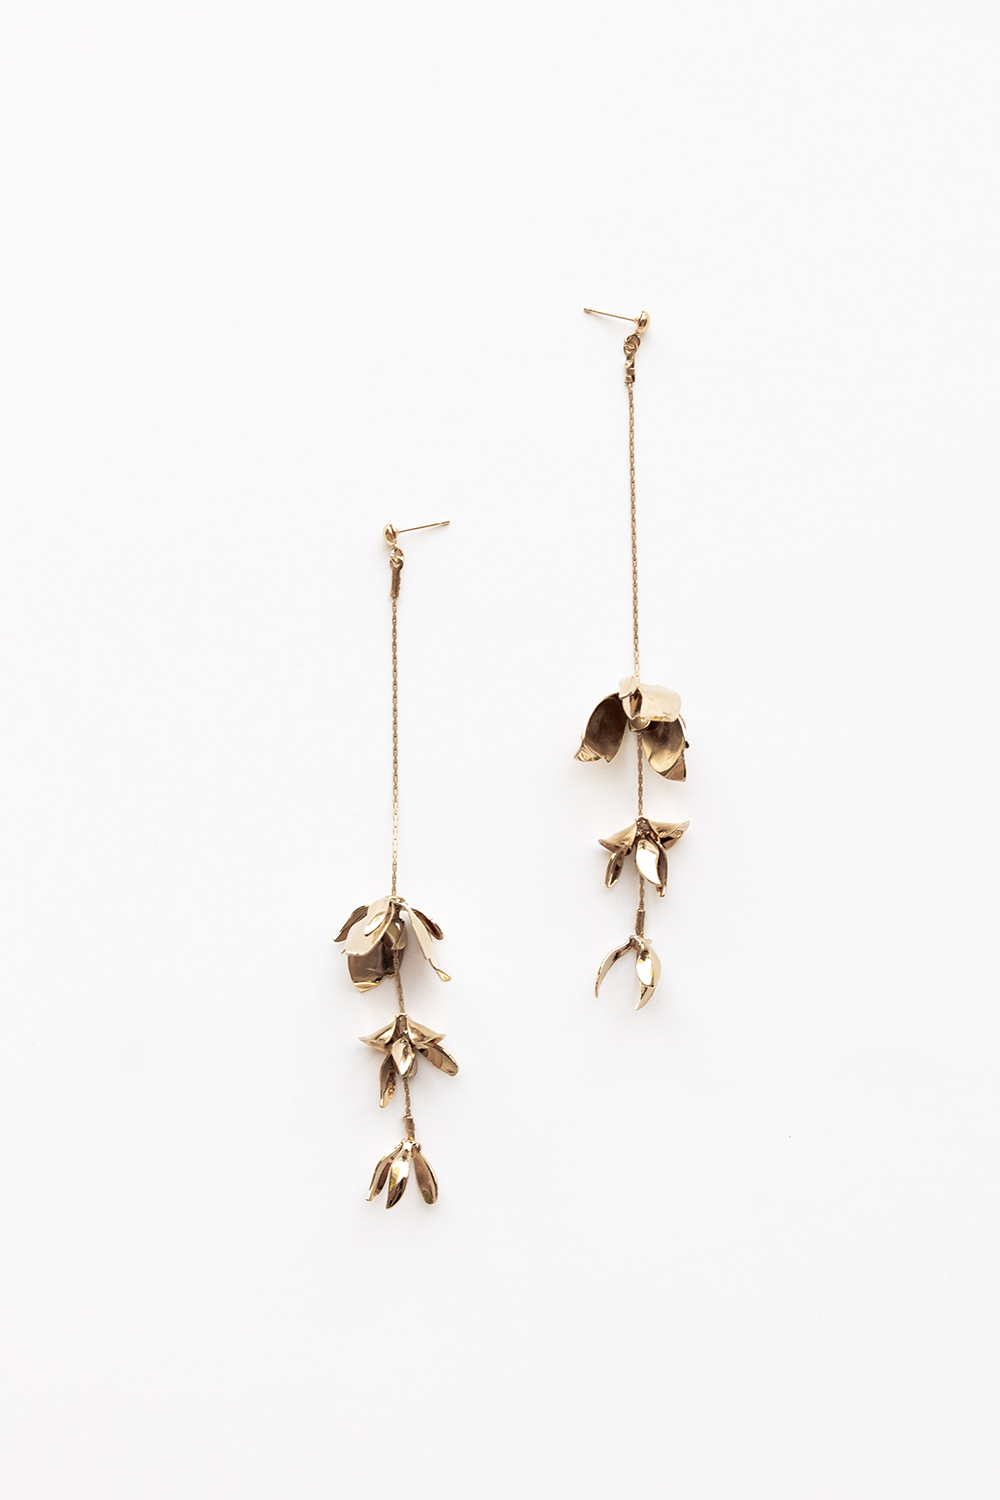 [RENTAL]A.B.ELLIE[Magnolia Strand Earrings]